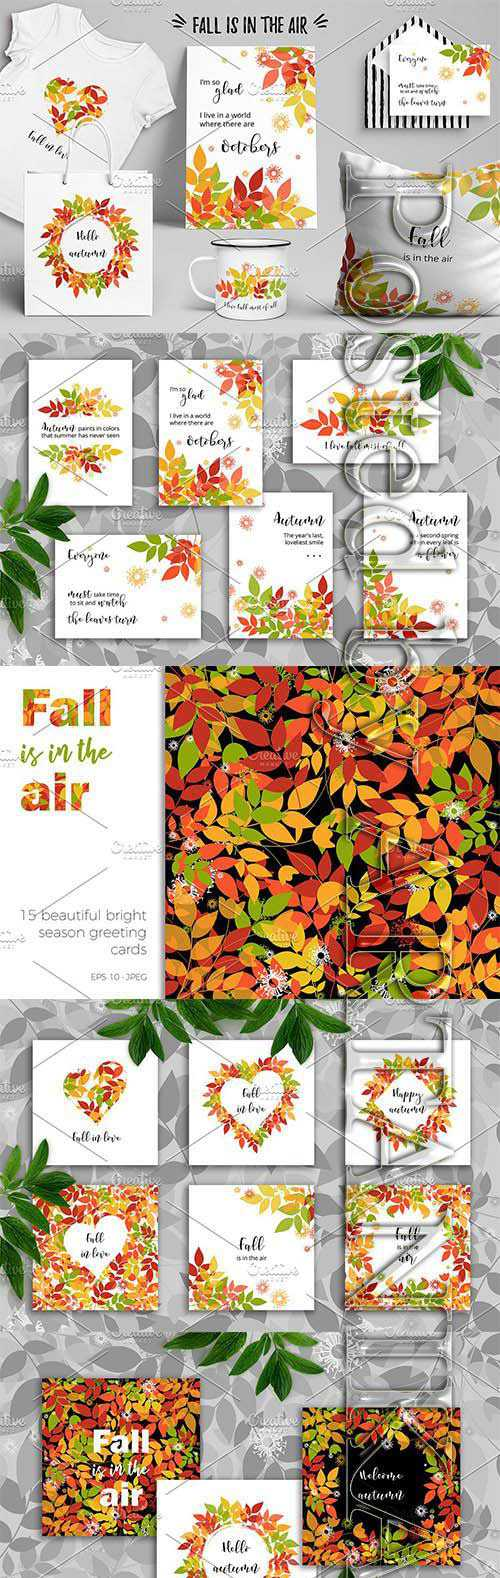 CreativeMarket – Fall is in the air 2246899